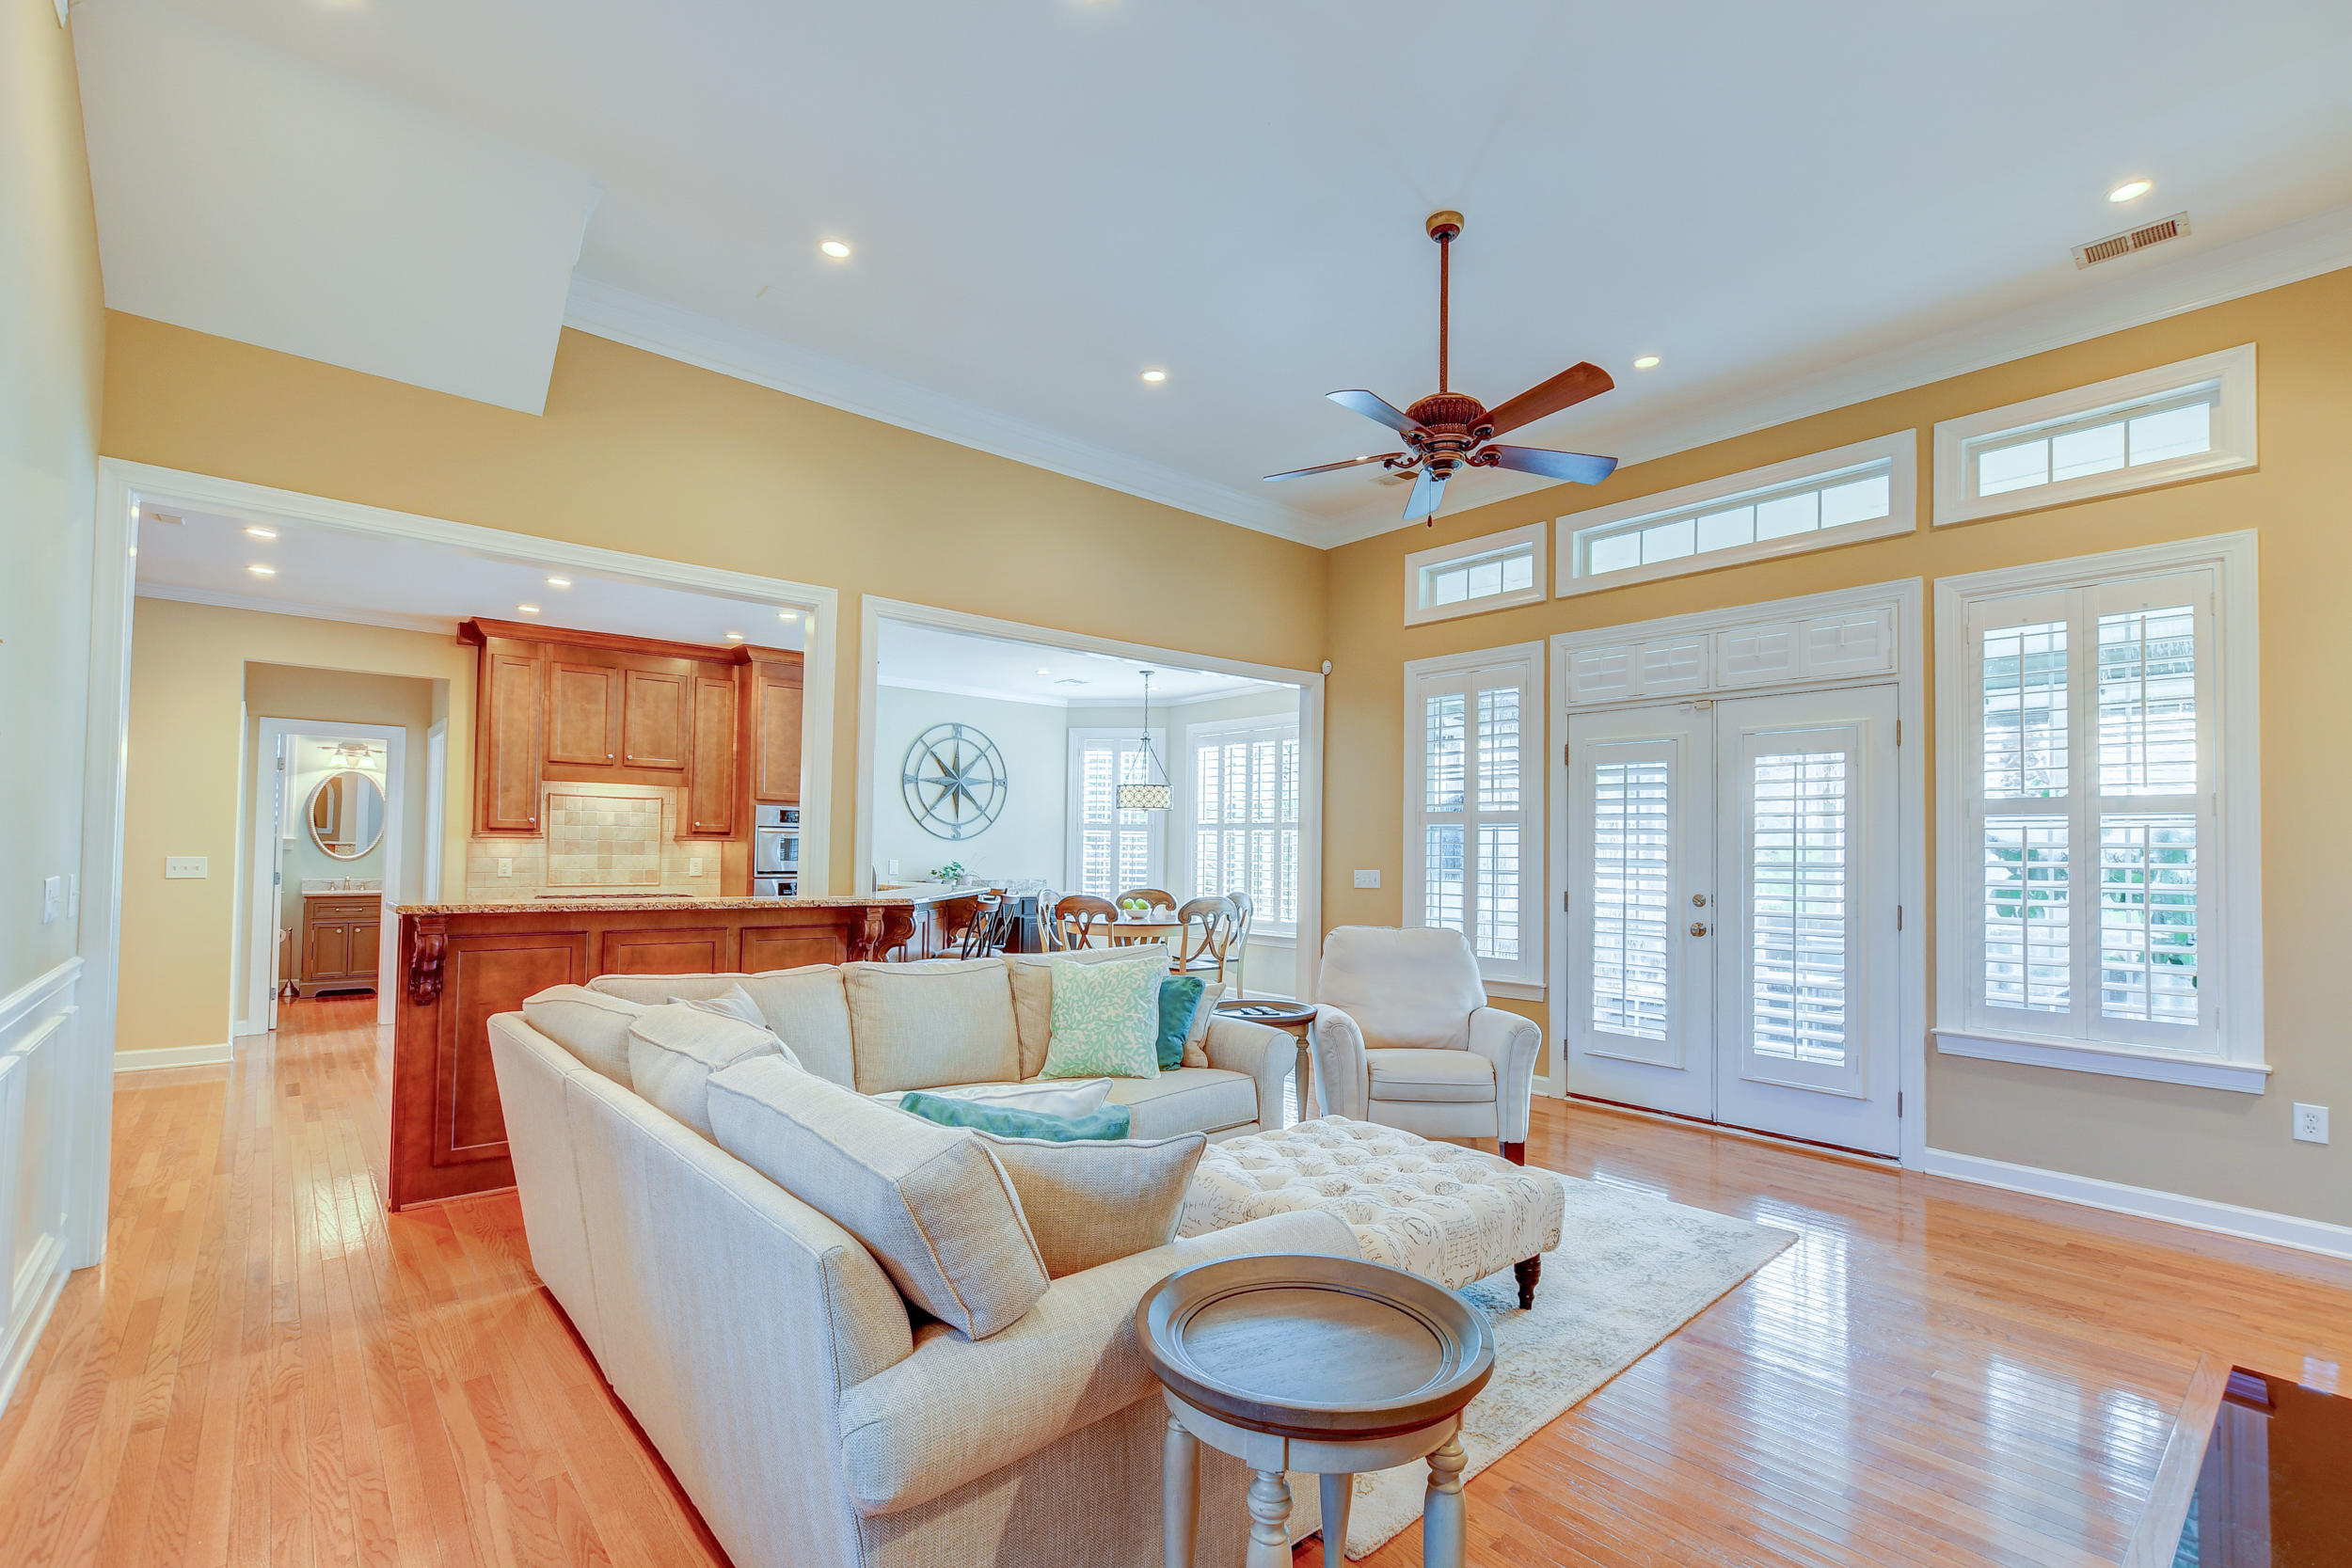 Dunes West Homes For Sale - 1500 Jacaranda, Mount Pleasant, SC - 23